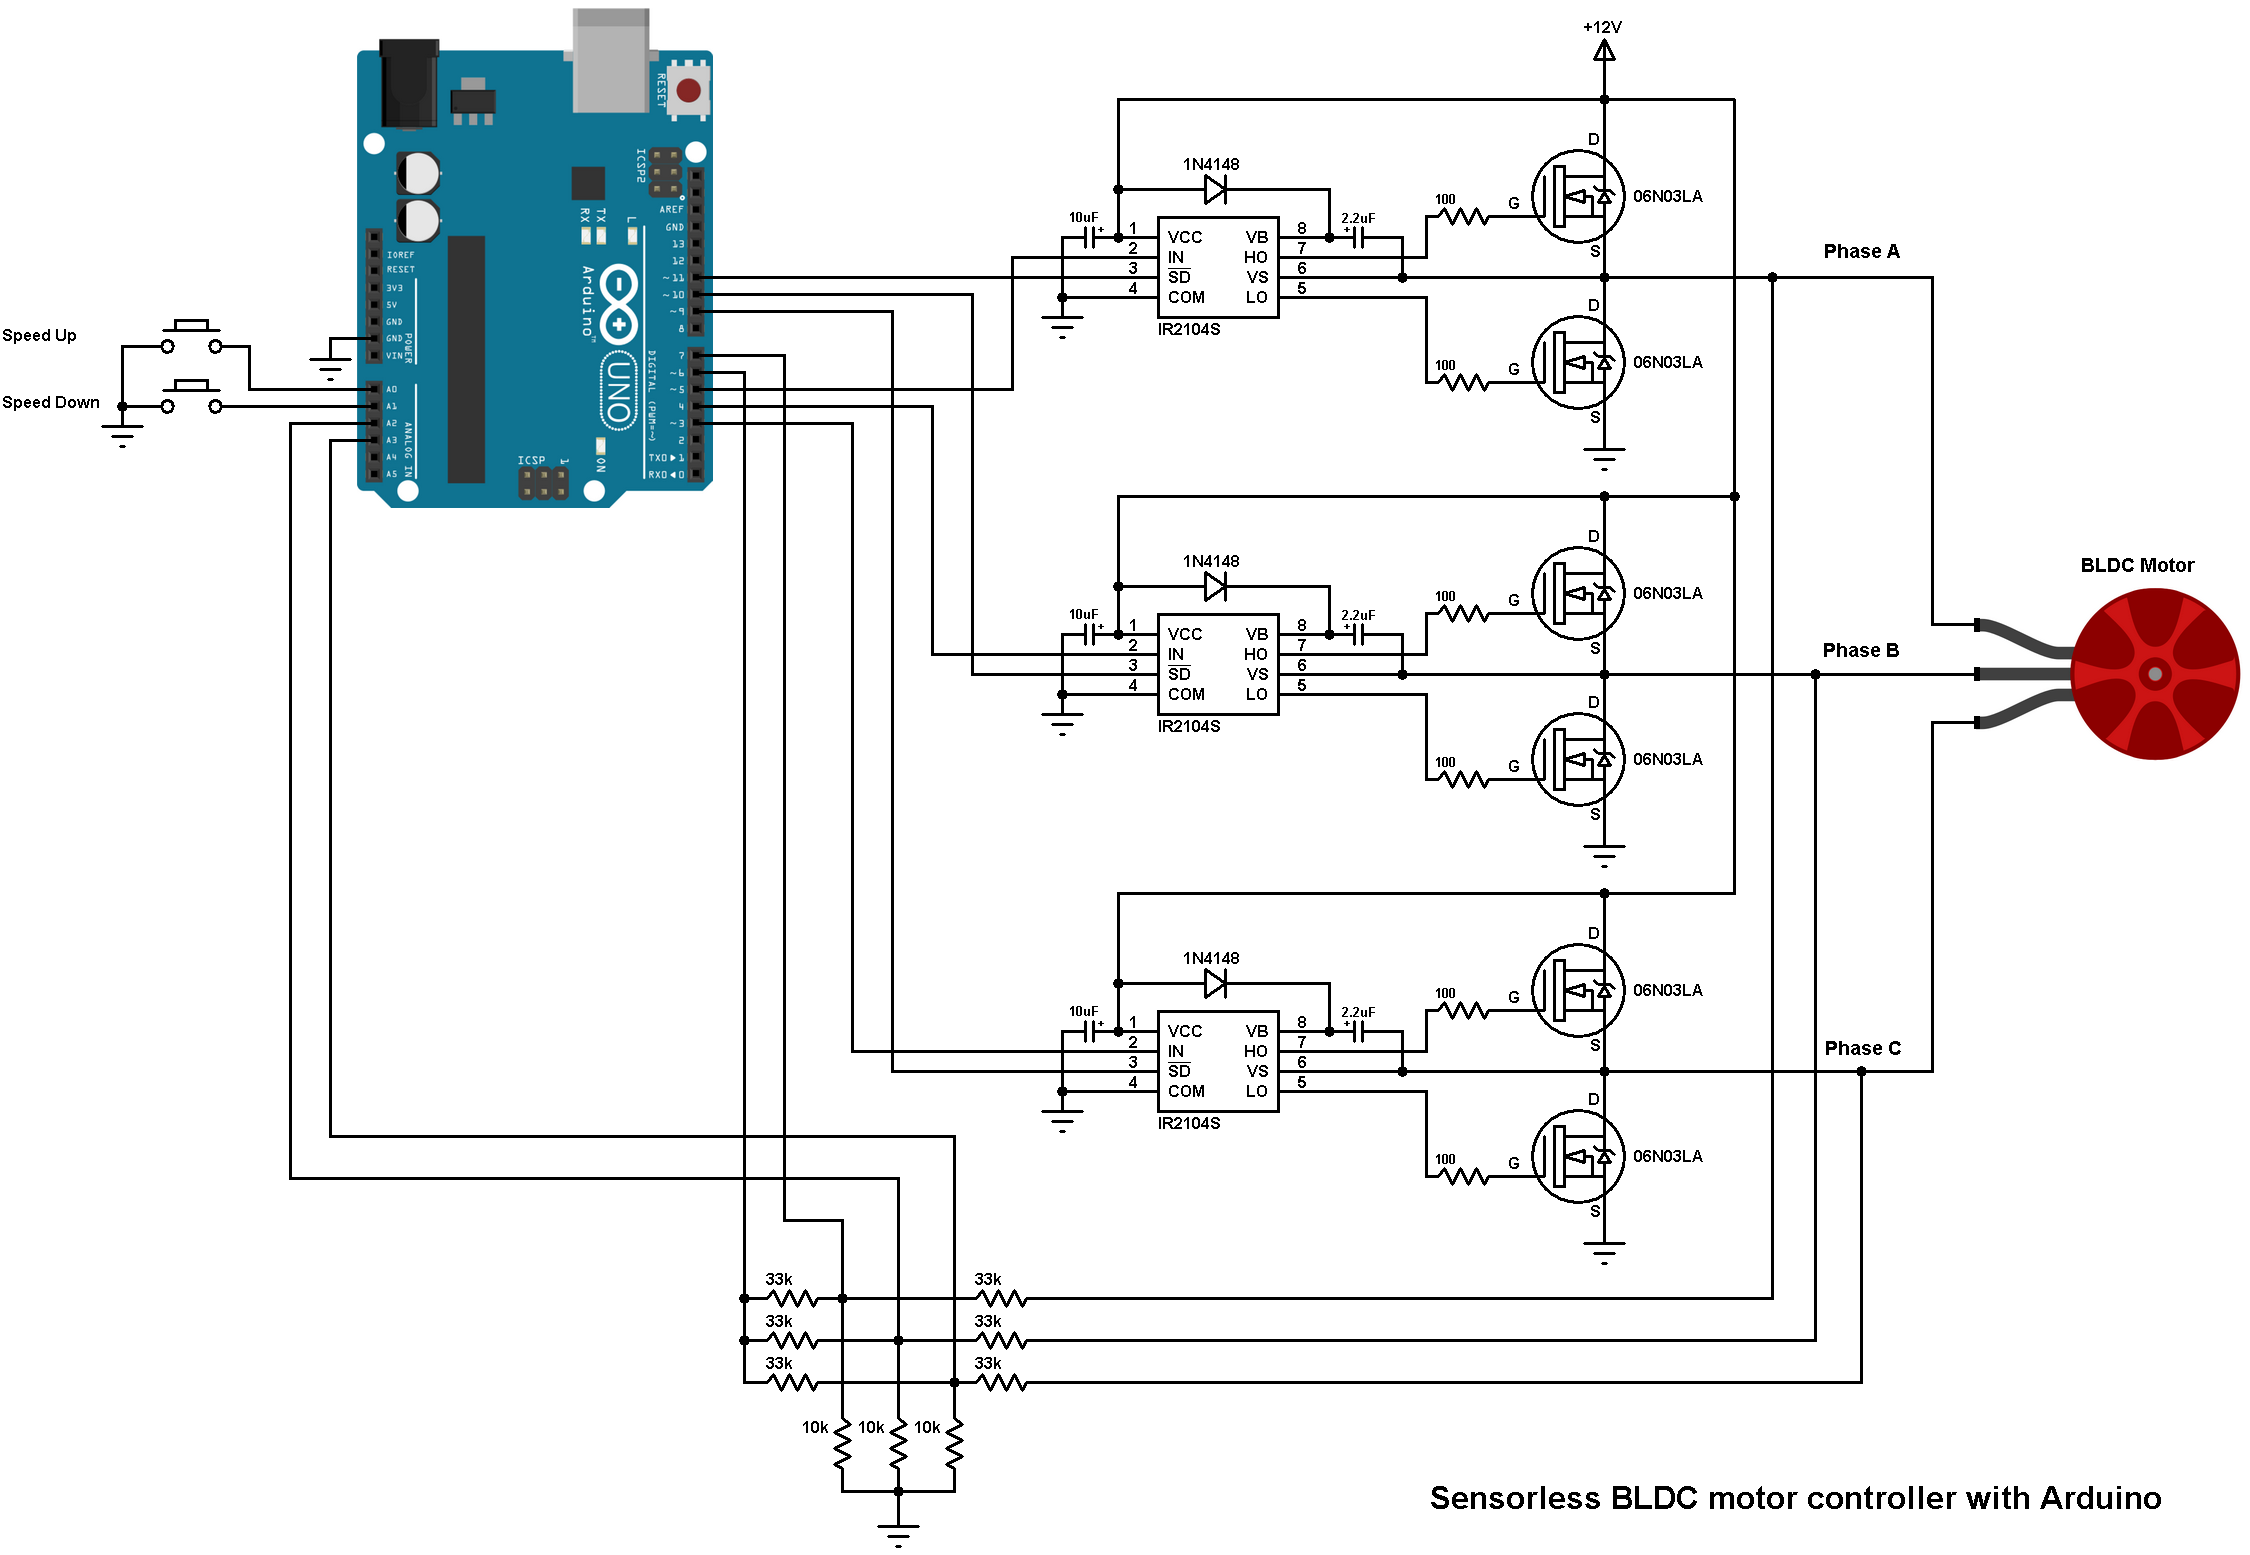 Simple Power Inverter Circuit Diagram Schematics Wiring Diagrams 1000w Electronic Circuits Sensorless Bldc Motor Control With Arduino Diy Esc 12v